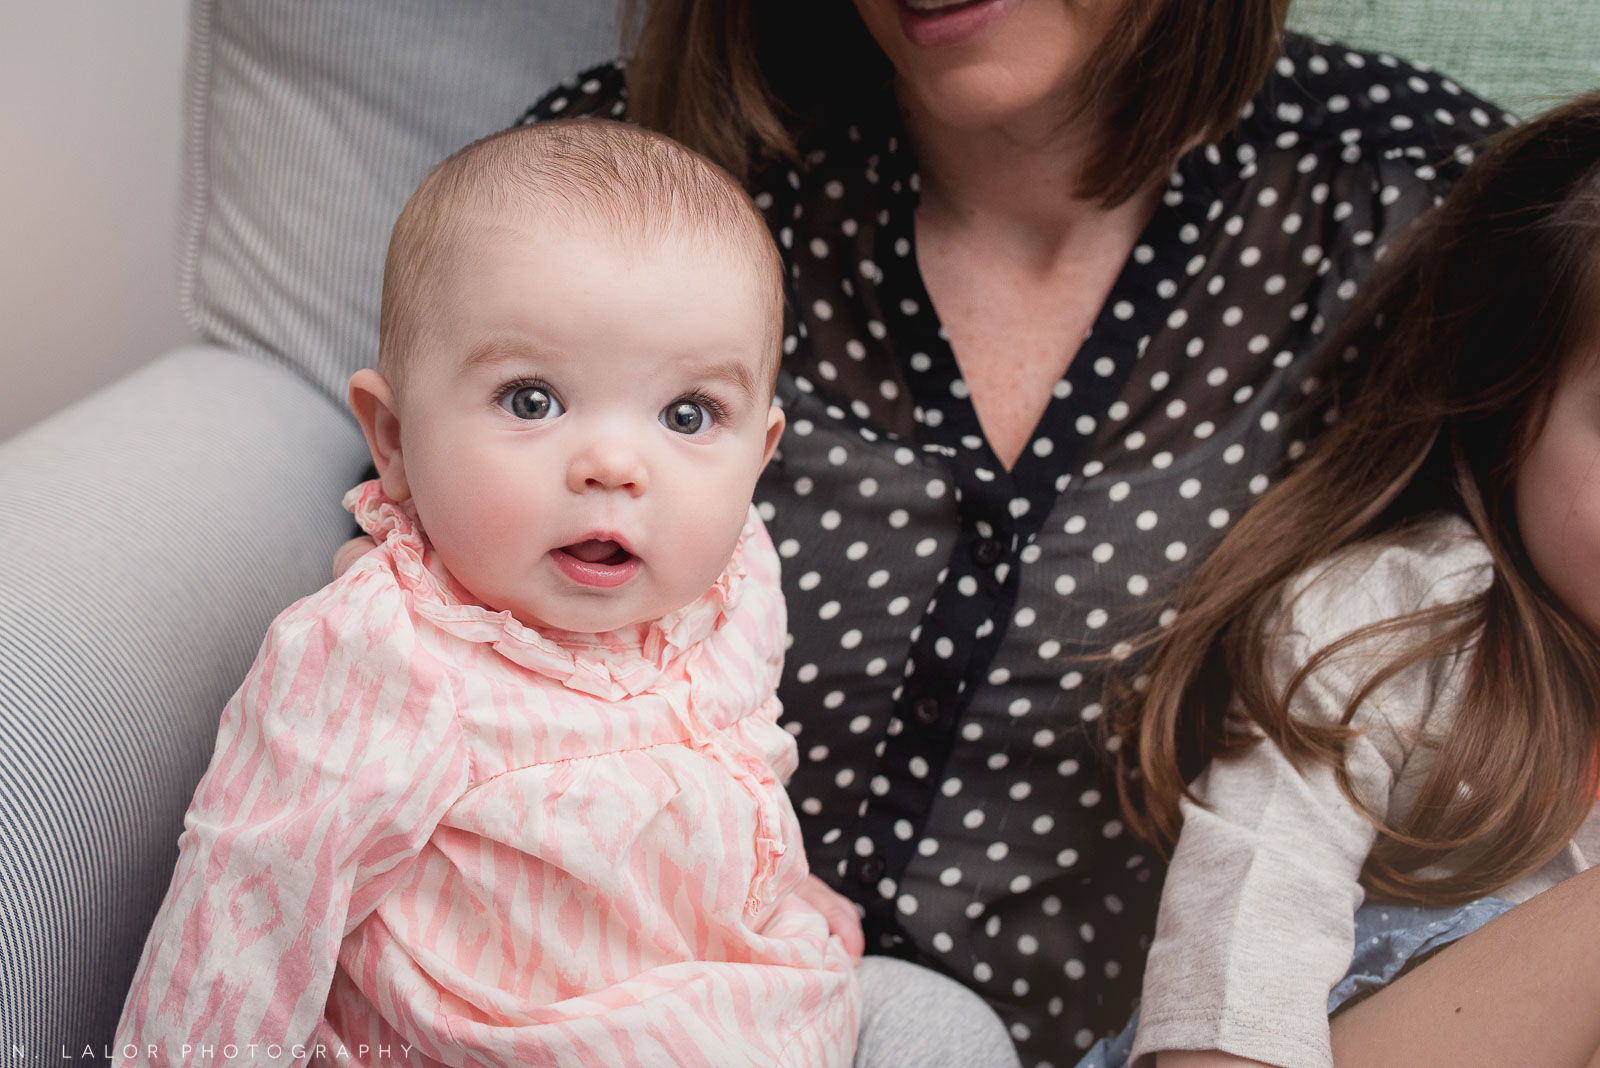 Adorable portrait of an 8-month old baby girl in Moms arms. Casual lifestyle portrait by N. Lalor Photography.